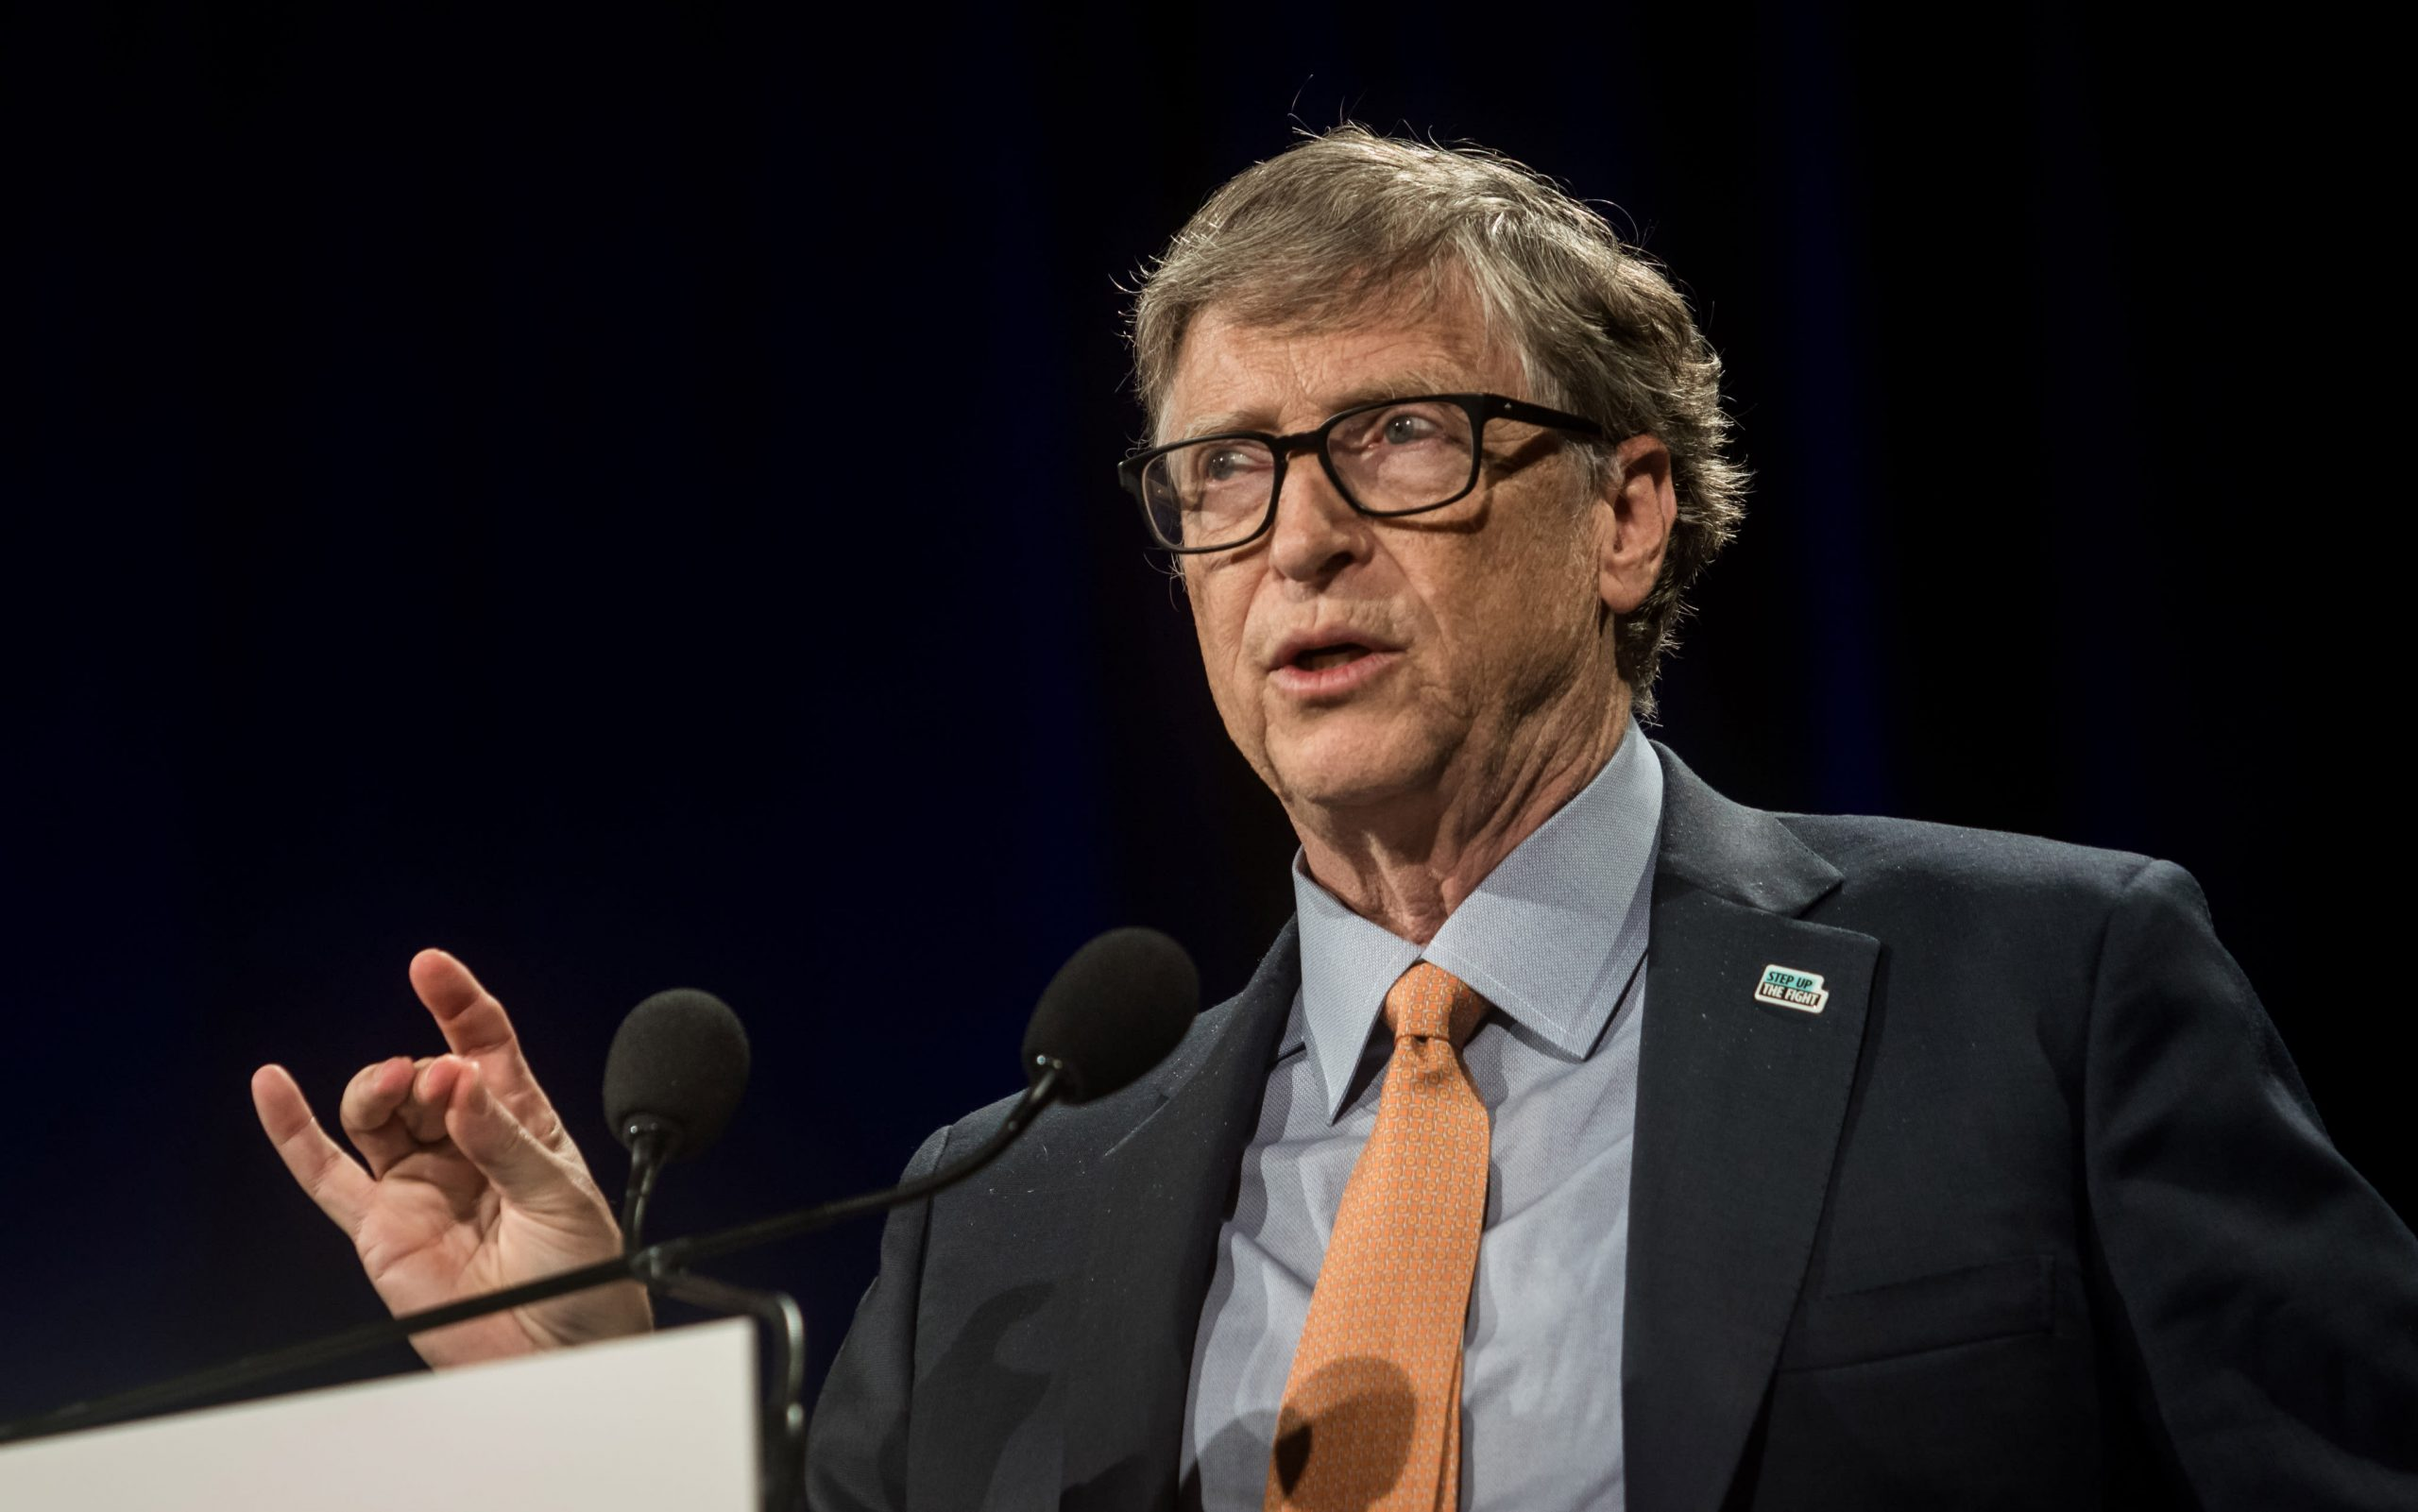 Bill Gates shares his vision of the COVID-19 pandemic